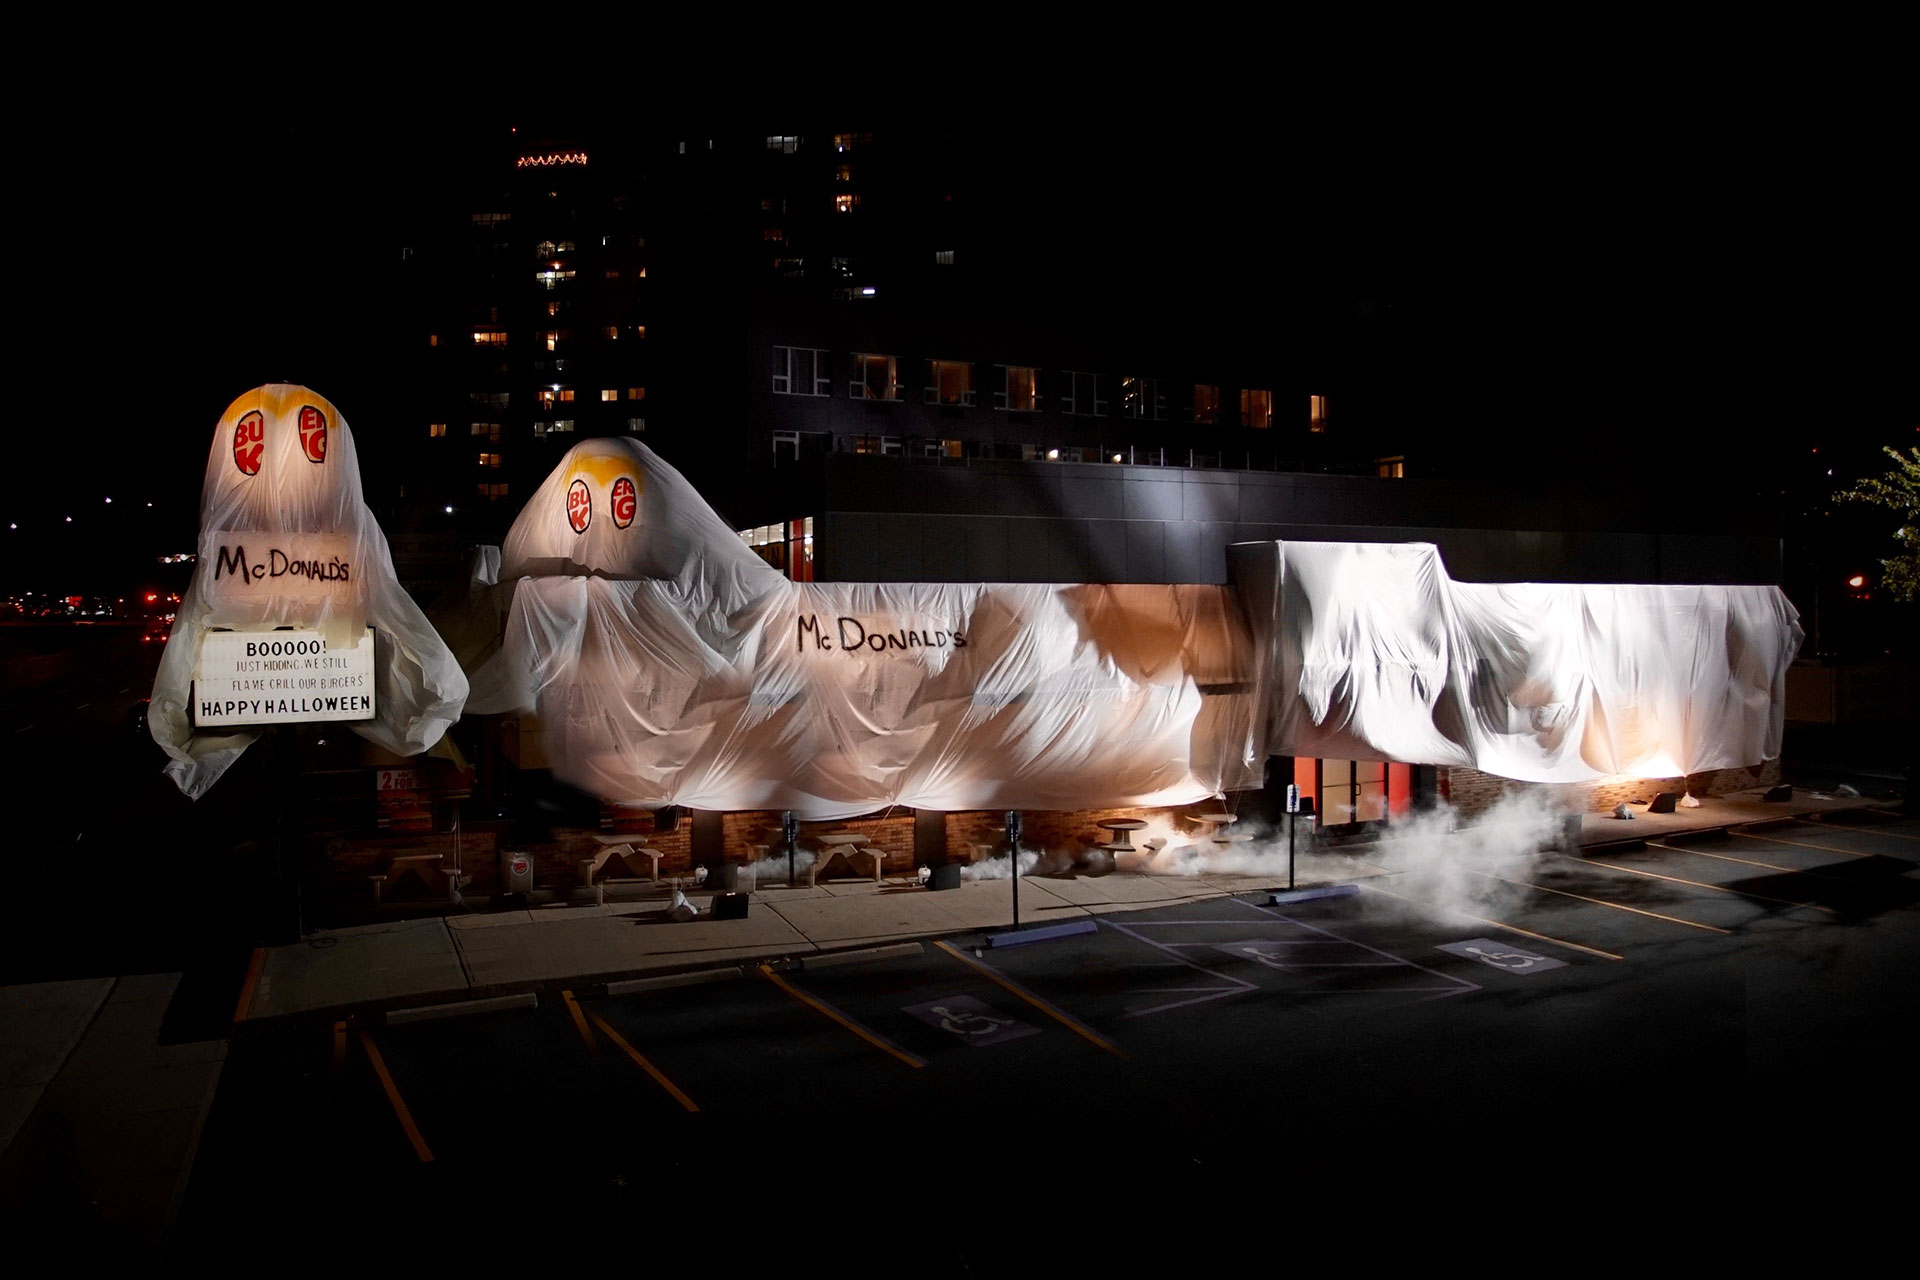 Burger King Dressed Up as the Ghost of McDonald's in This Scary ...